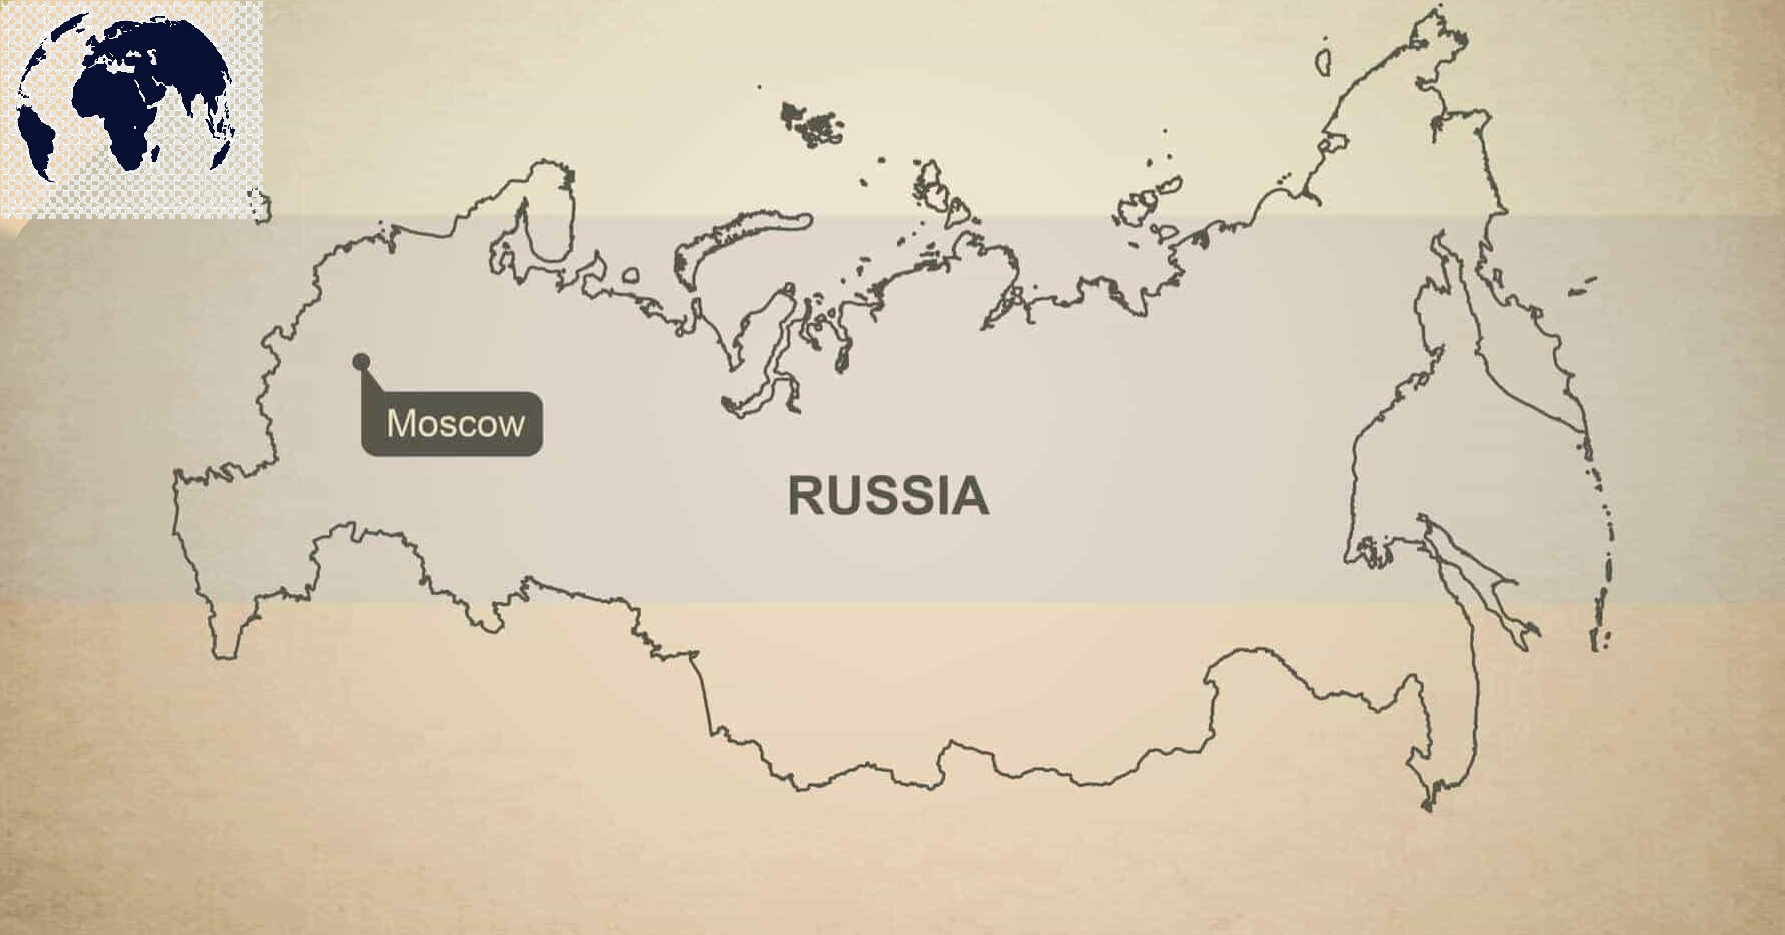 Transparent-PNG-Russia-Map